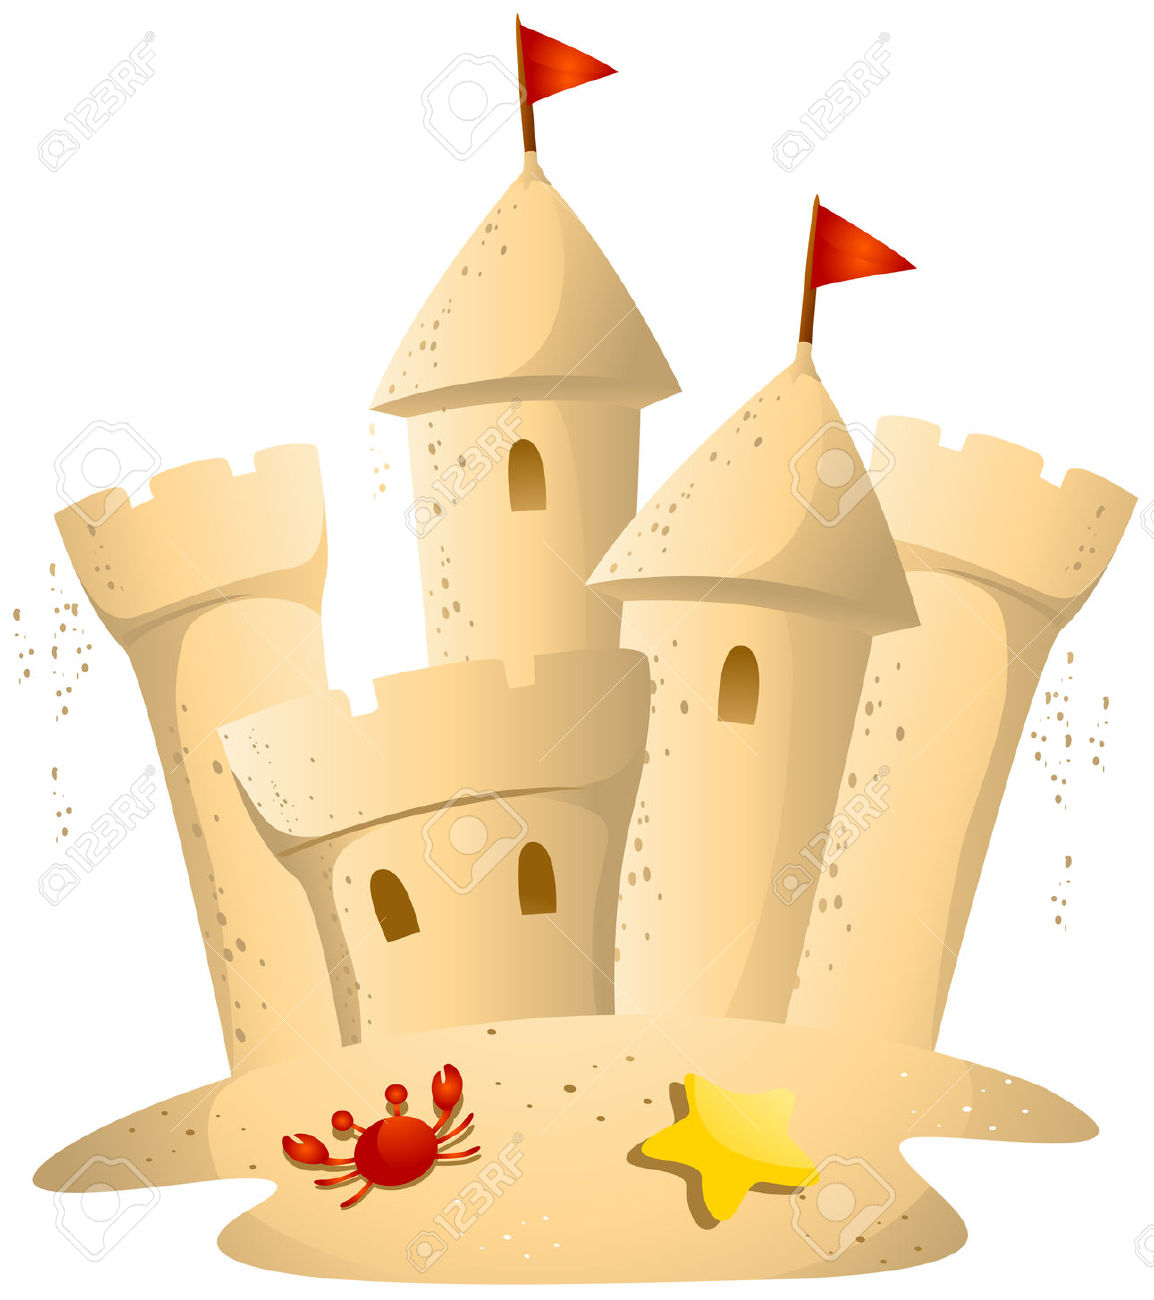 Sandcastle Clipart Black And